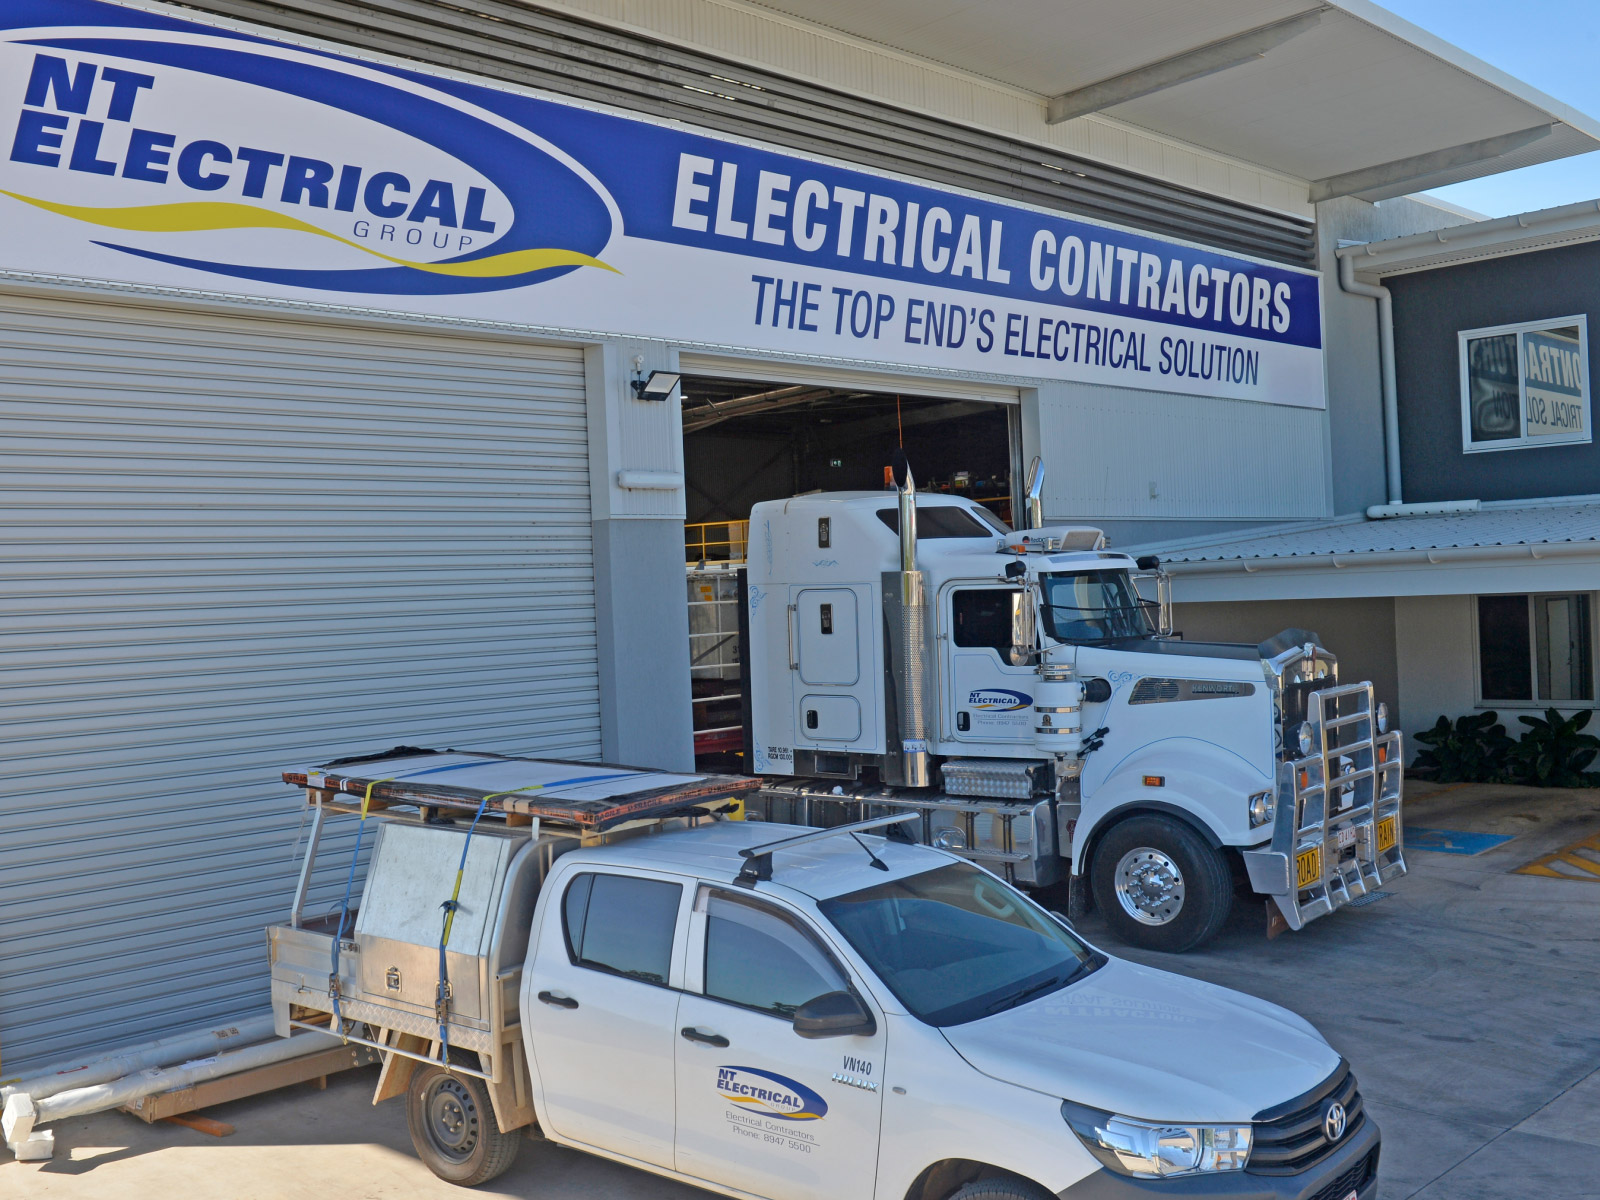 Our electrician shop in Darwin